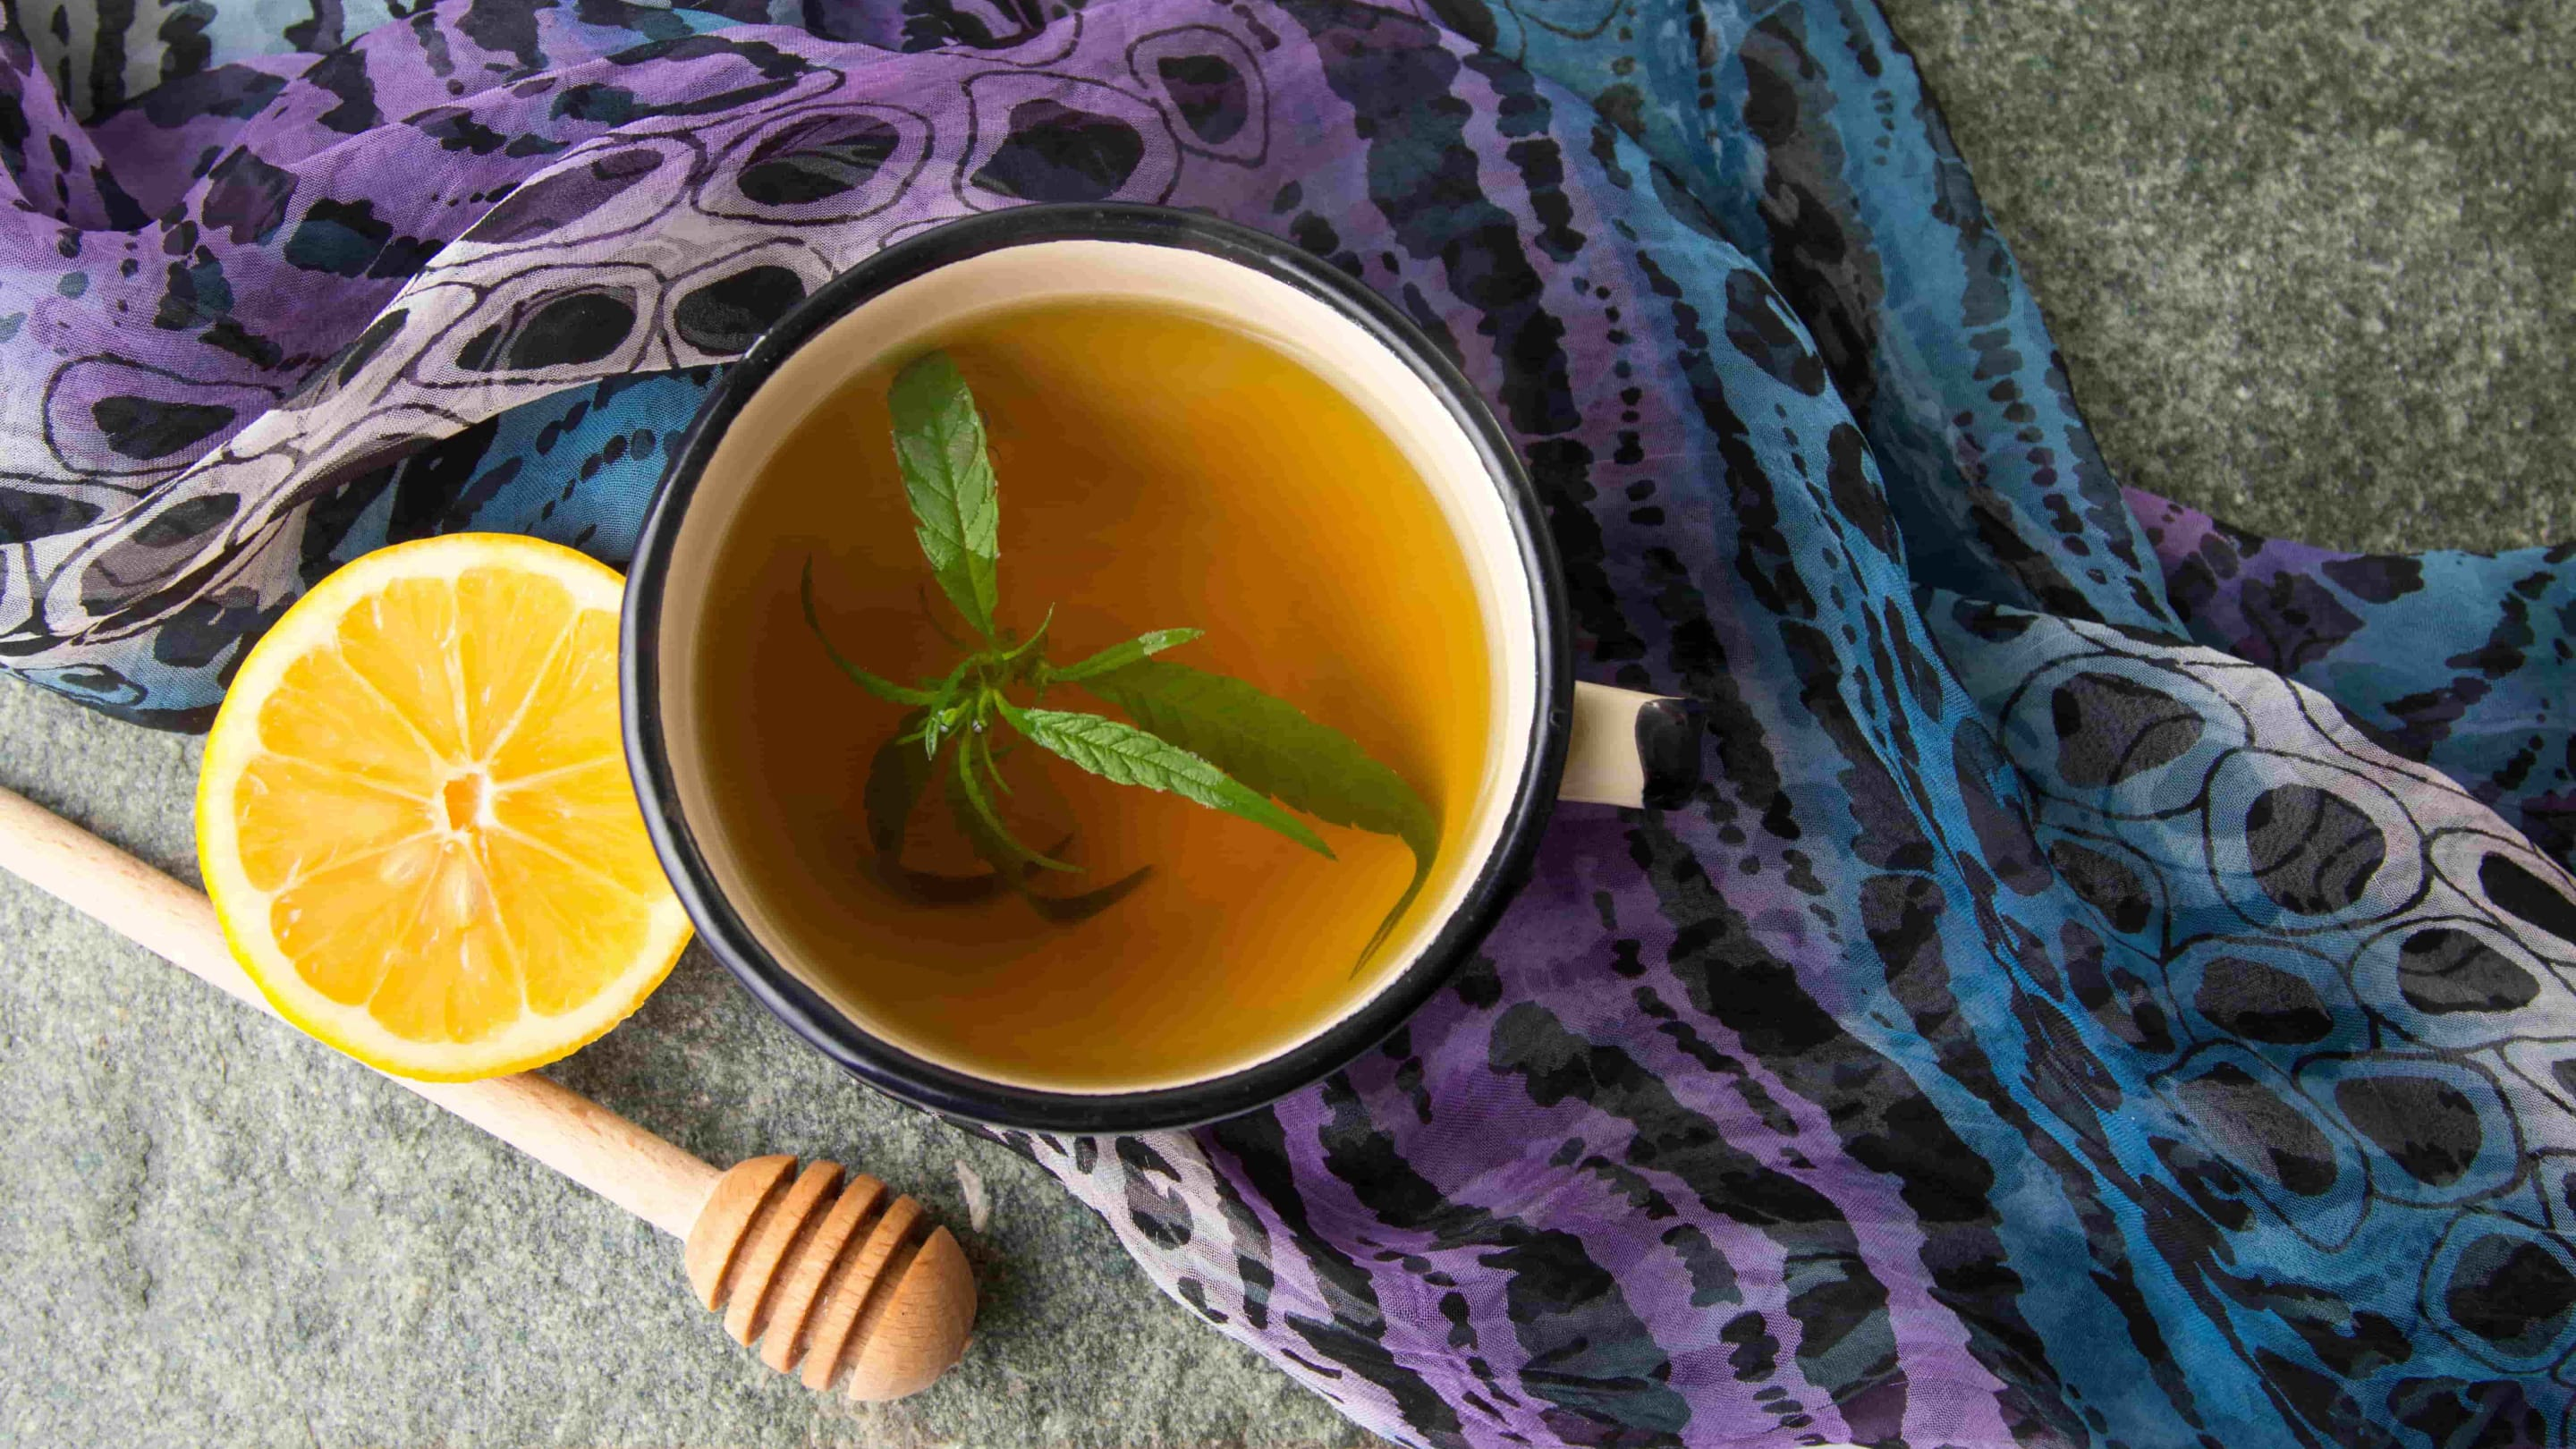 Potent Recipe: How to Make Weed Stem Tea in 5 Easy Steps